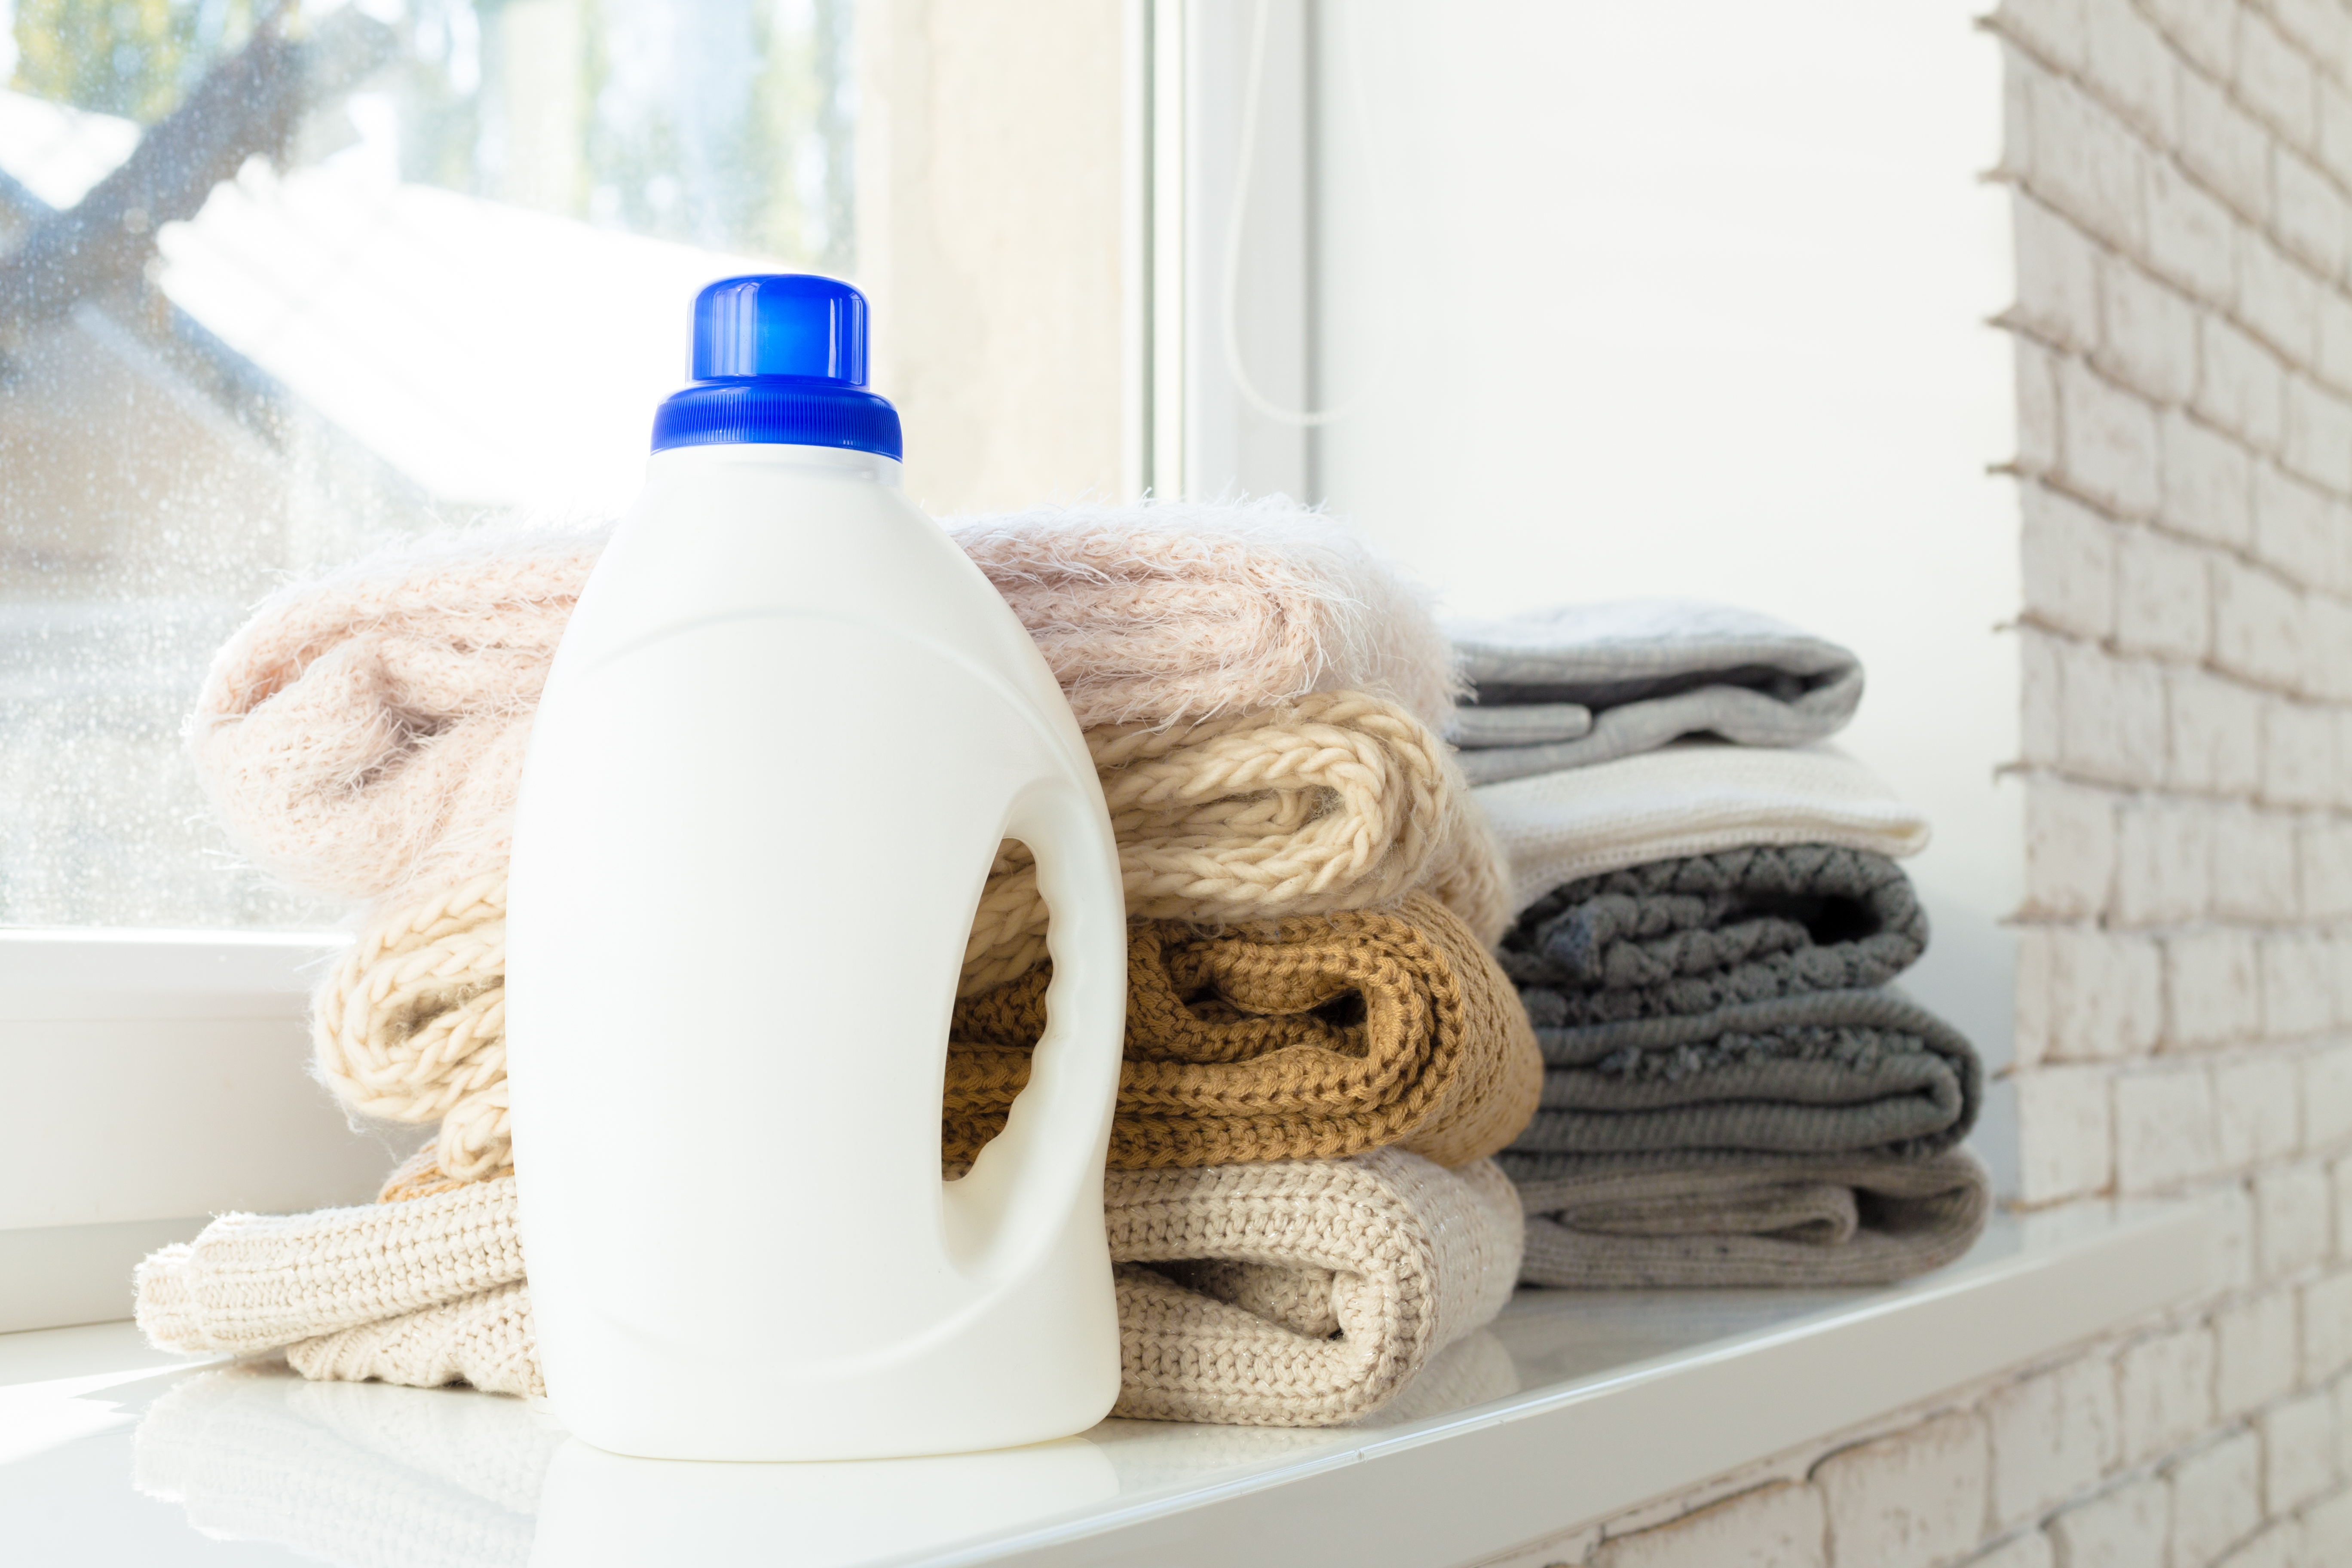 What Is the Ratio of Water to Dawn Liquid Detergent for Making an